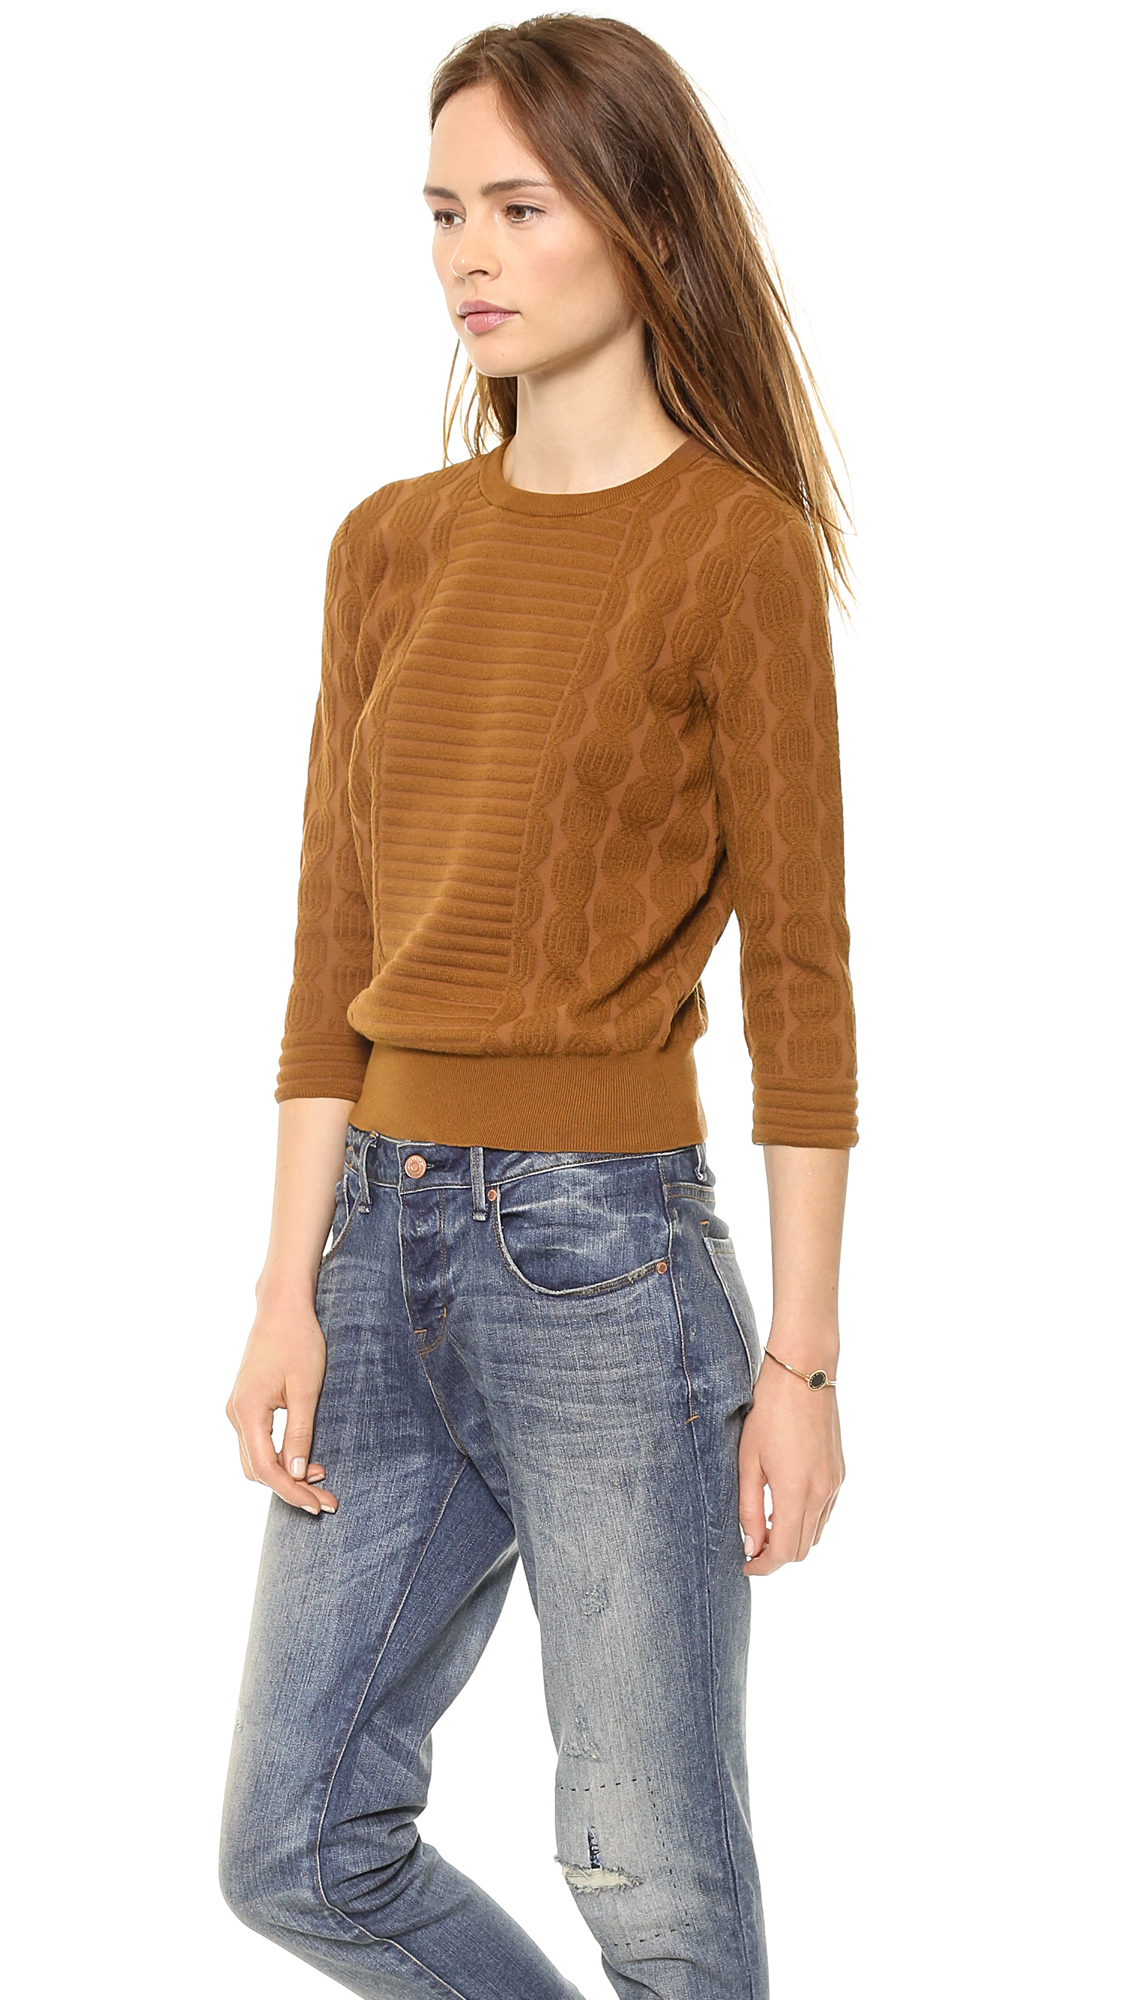 marc by marc jacobs lucinda sweater spice cake in brown lyst. Black Bedroom Furniture Sets. Home Design Ideas